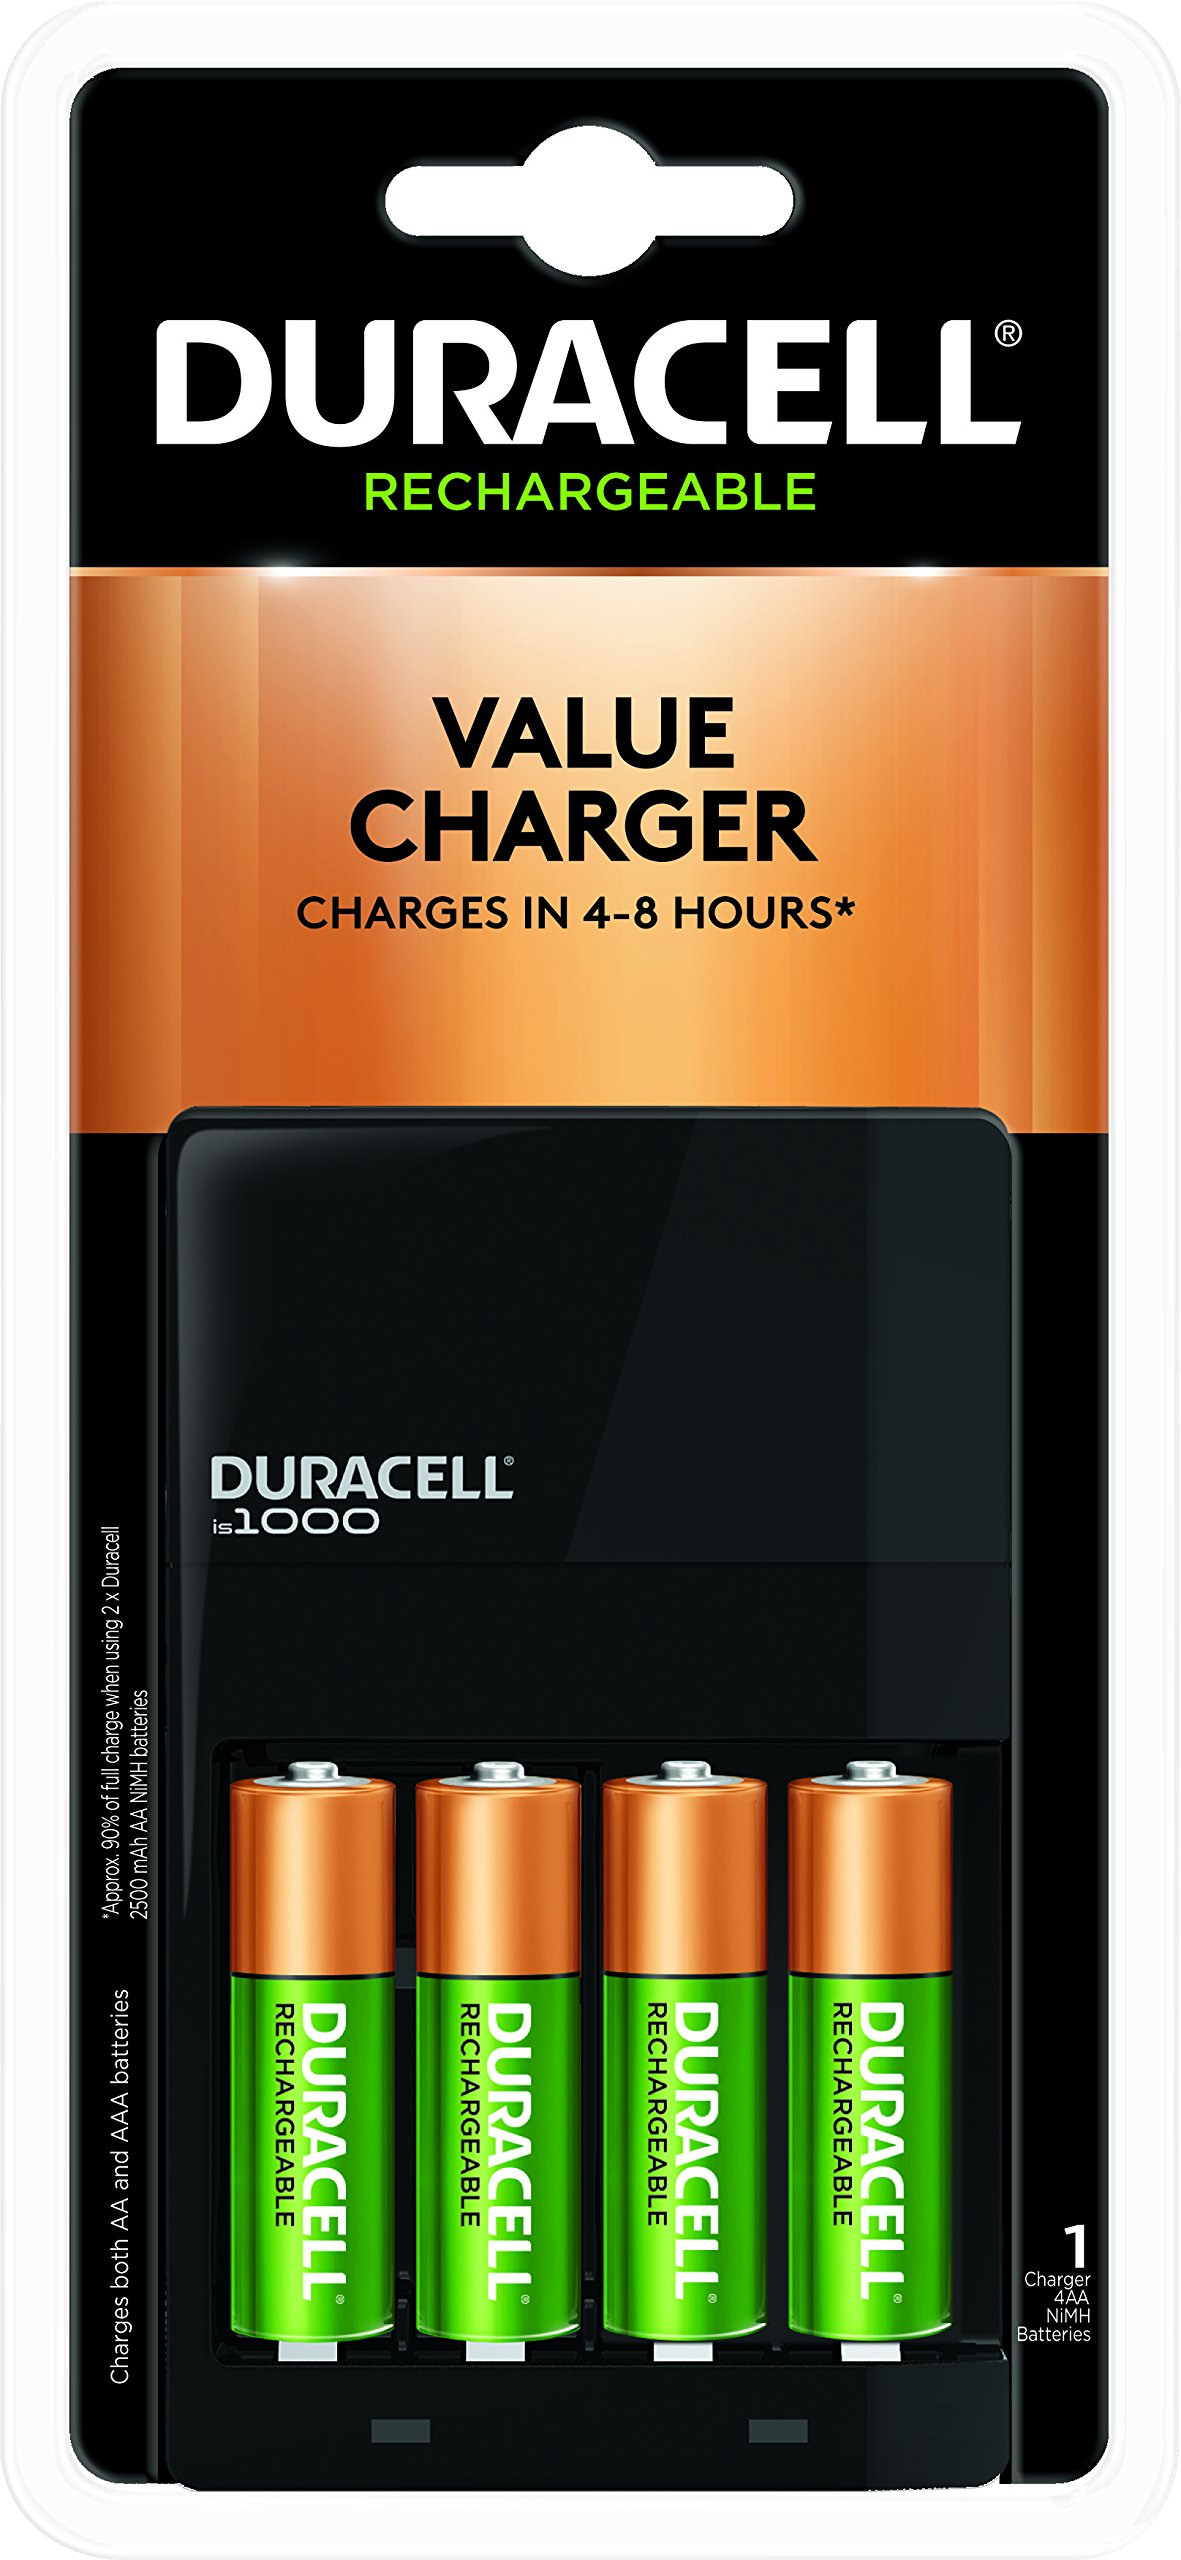 duracell ion speed 4000 battery charger manual